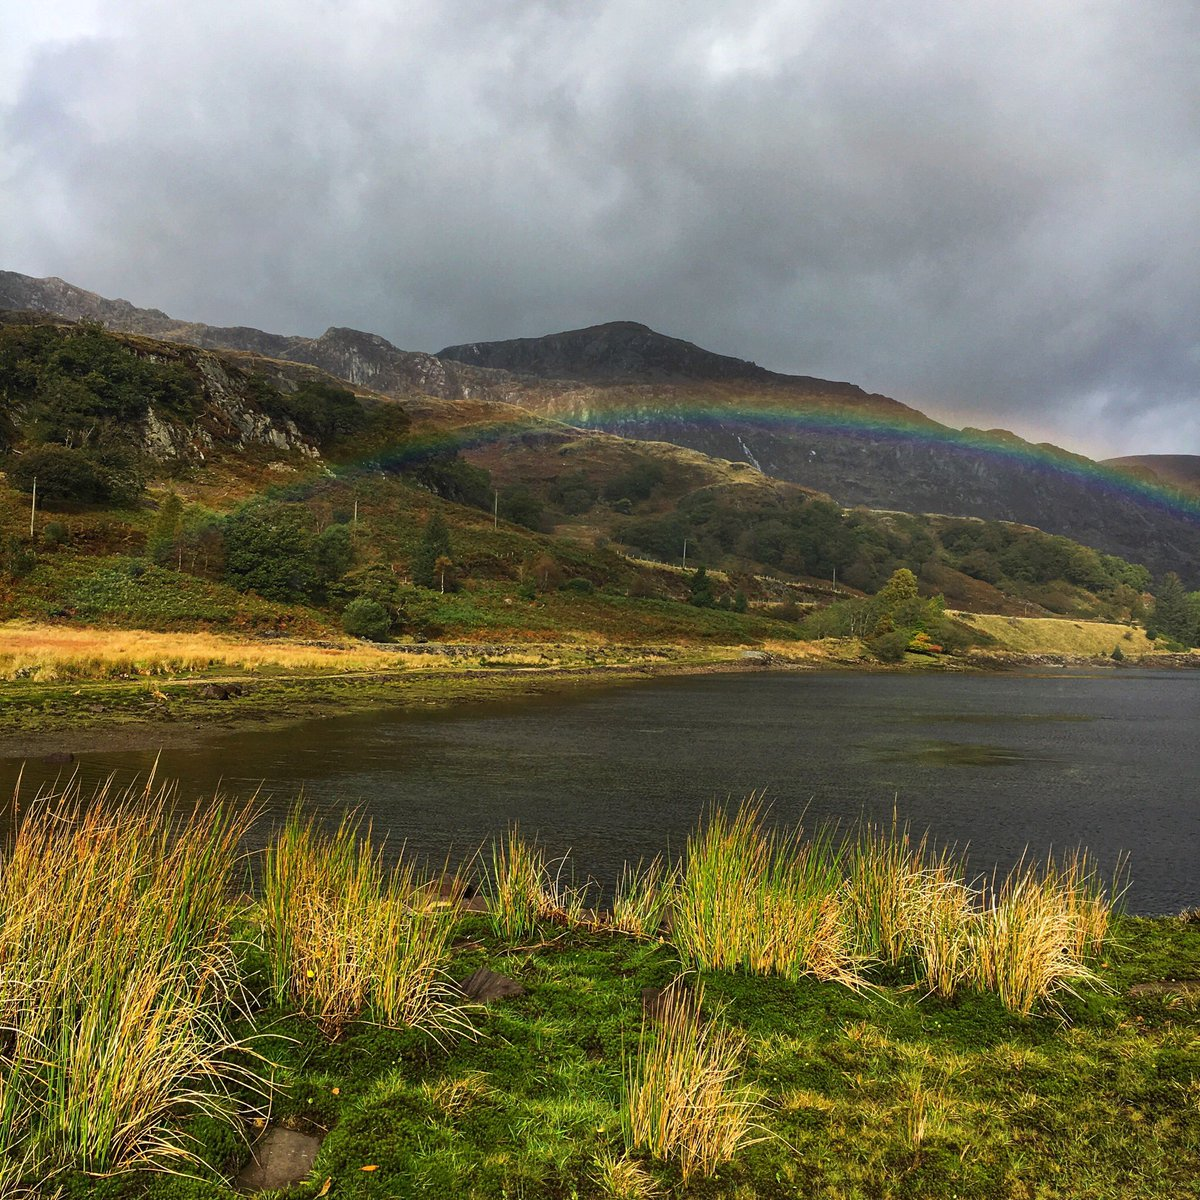 Had to get up very early on this cold dark morning, so I'll cheer myself up with my picture of a rainbow in Snowdonia.